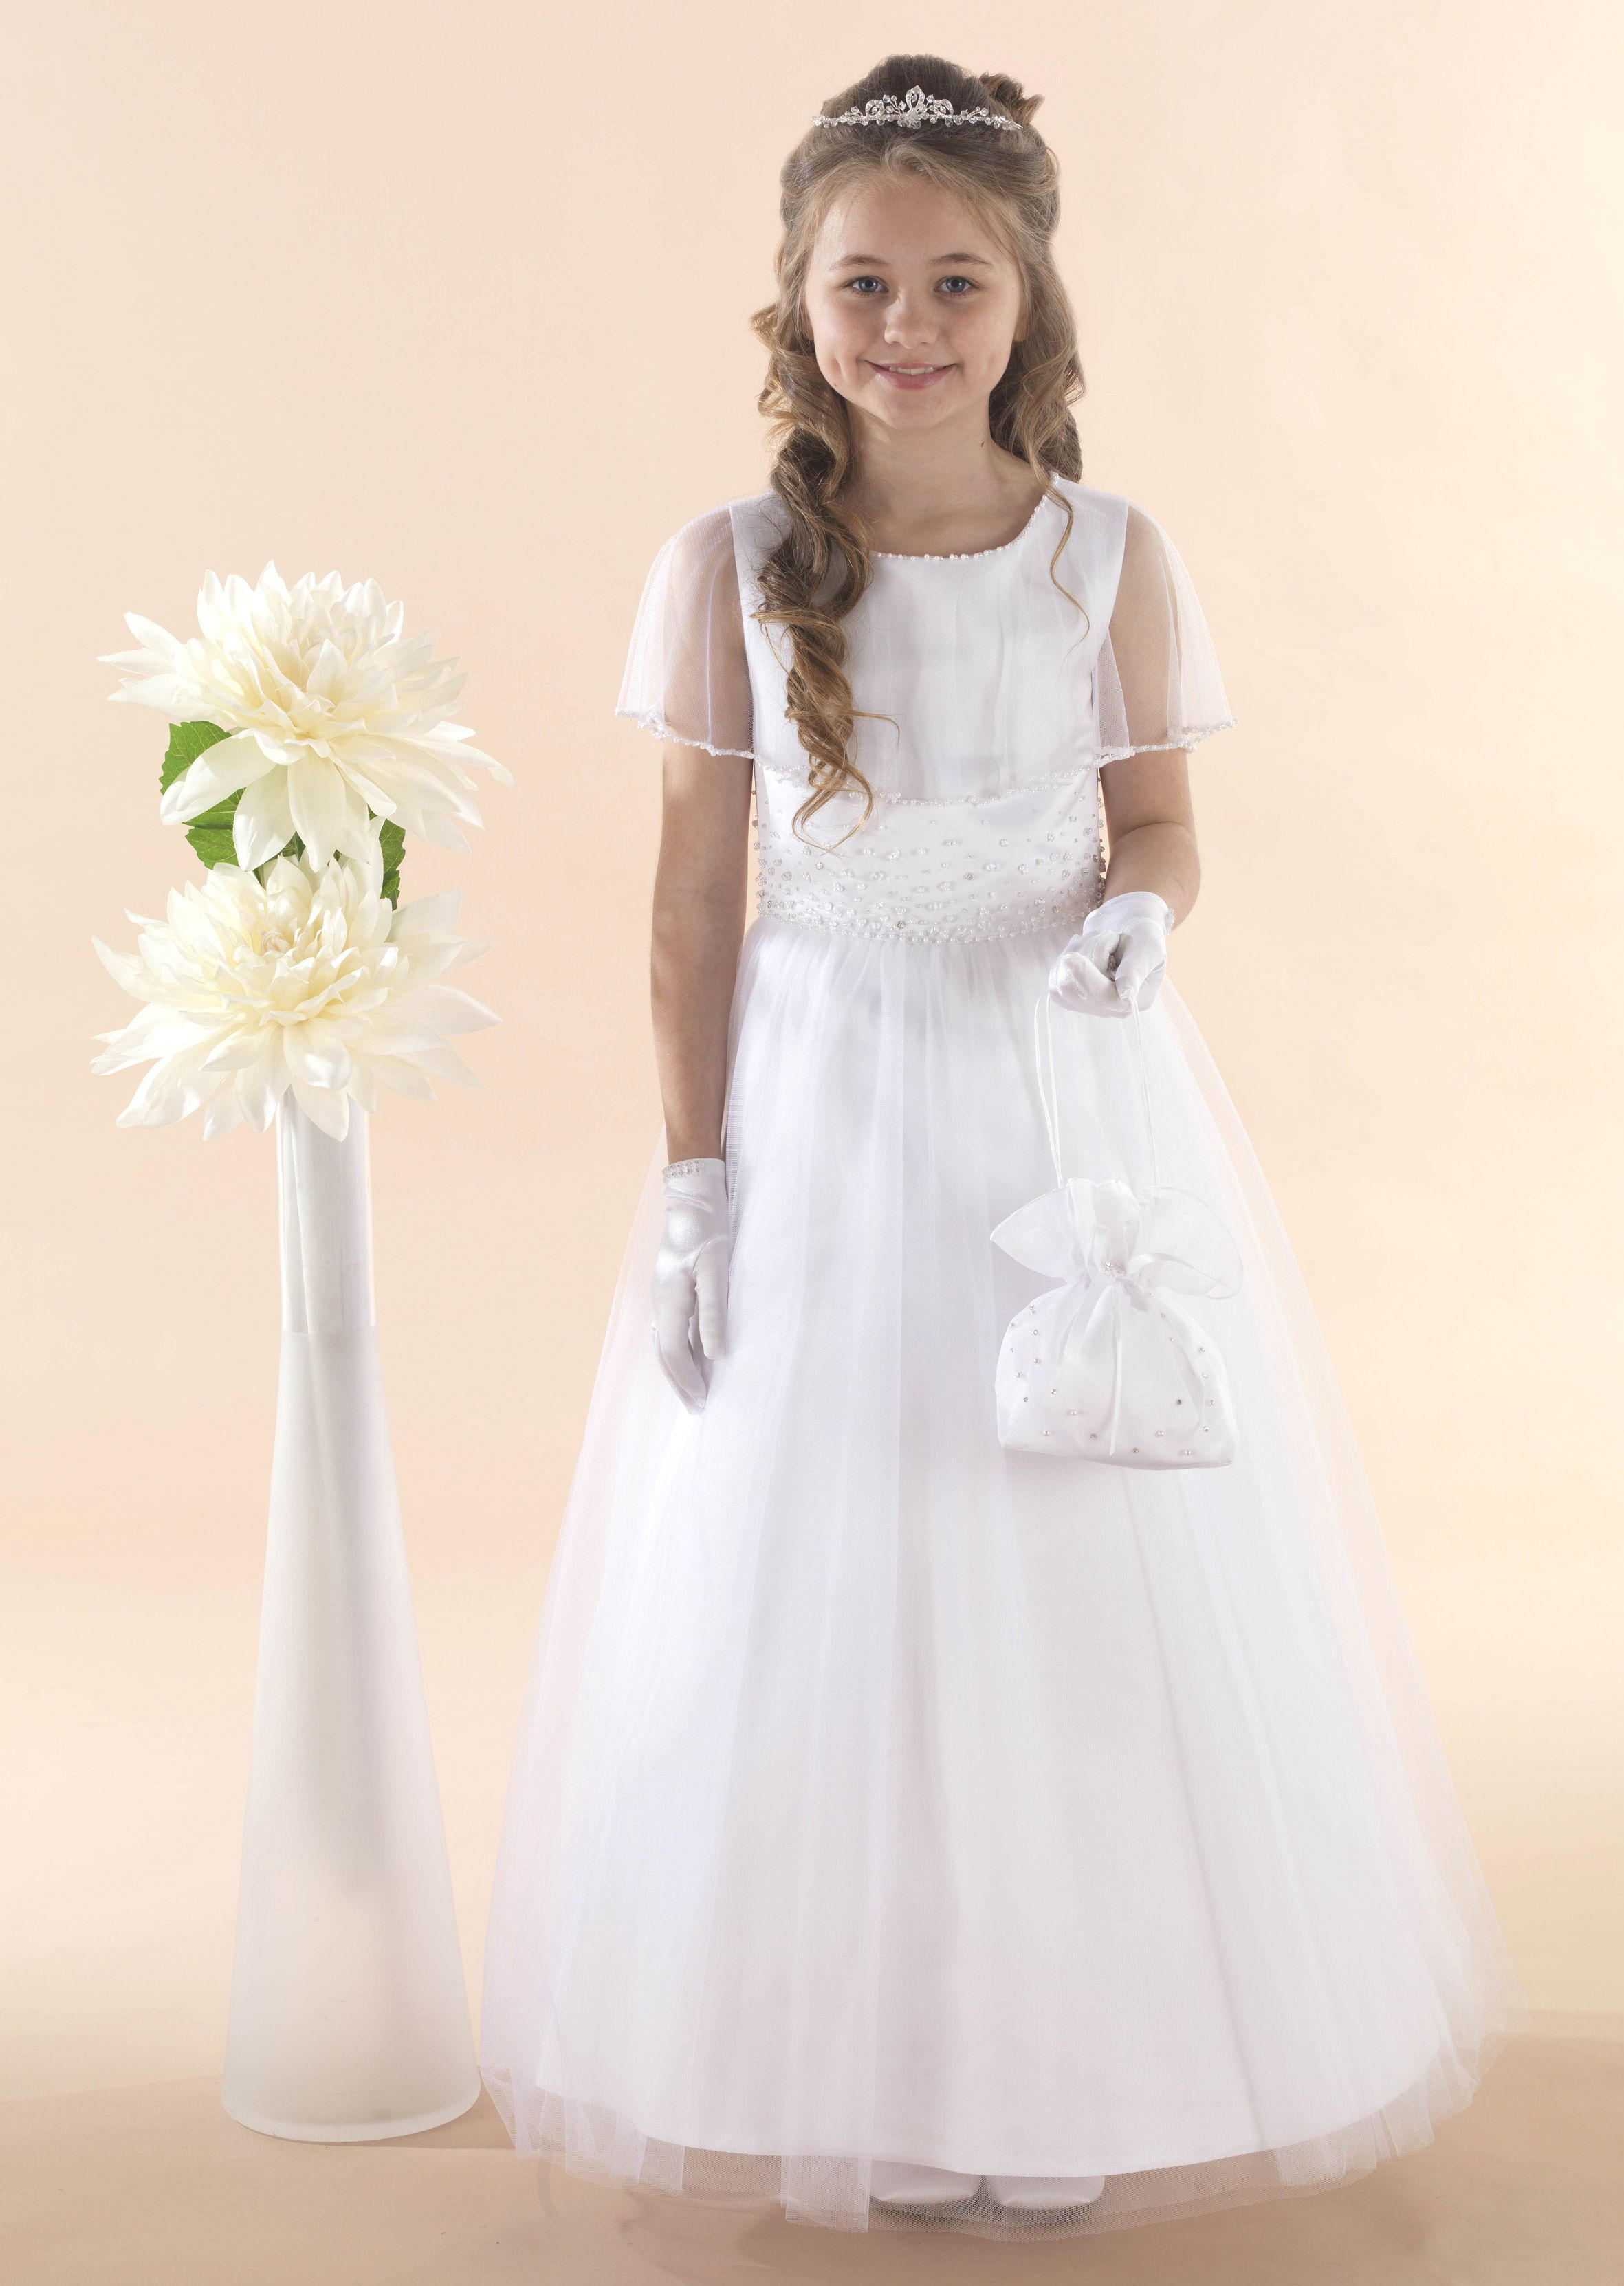 51829f6b853c Satin & Tulle Communion Gown with Tulle Cape